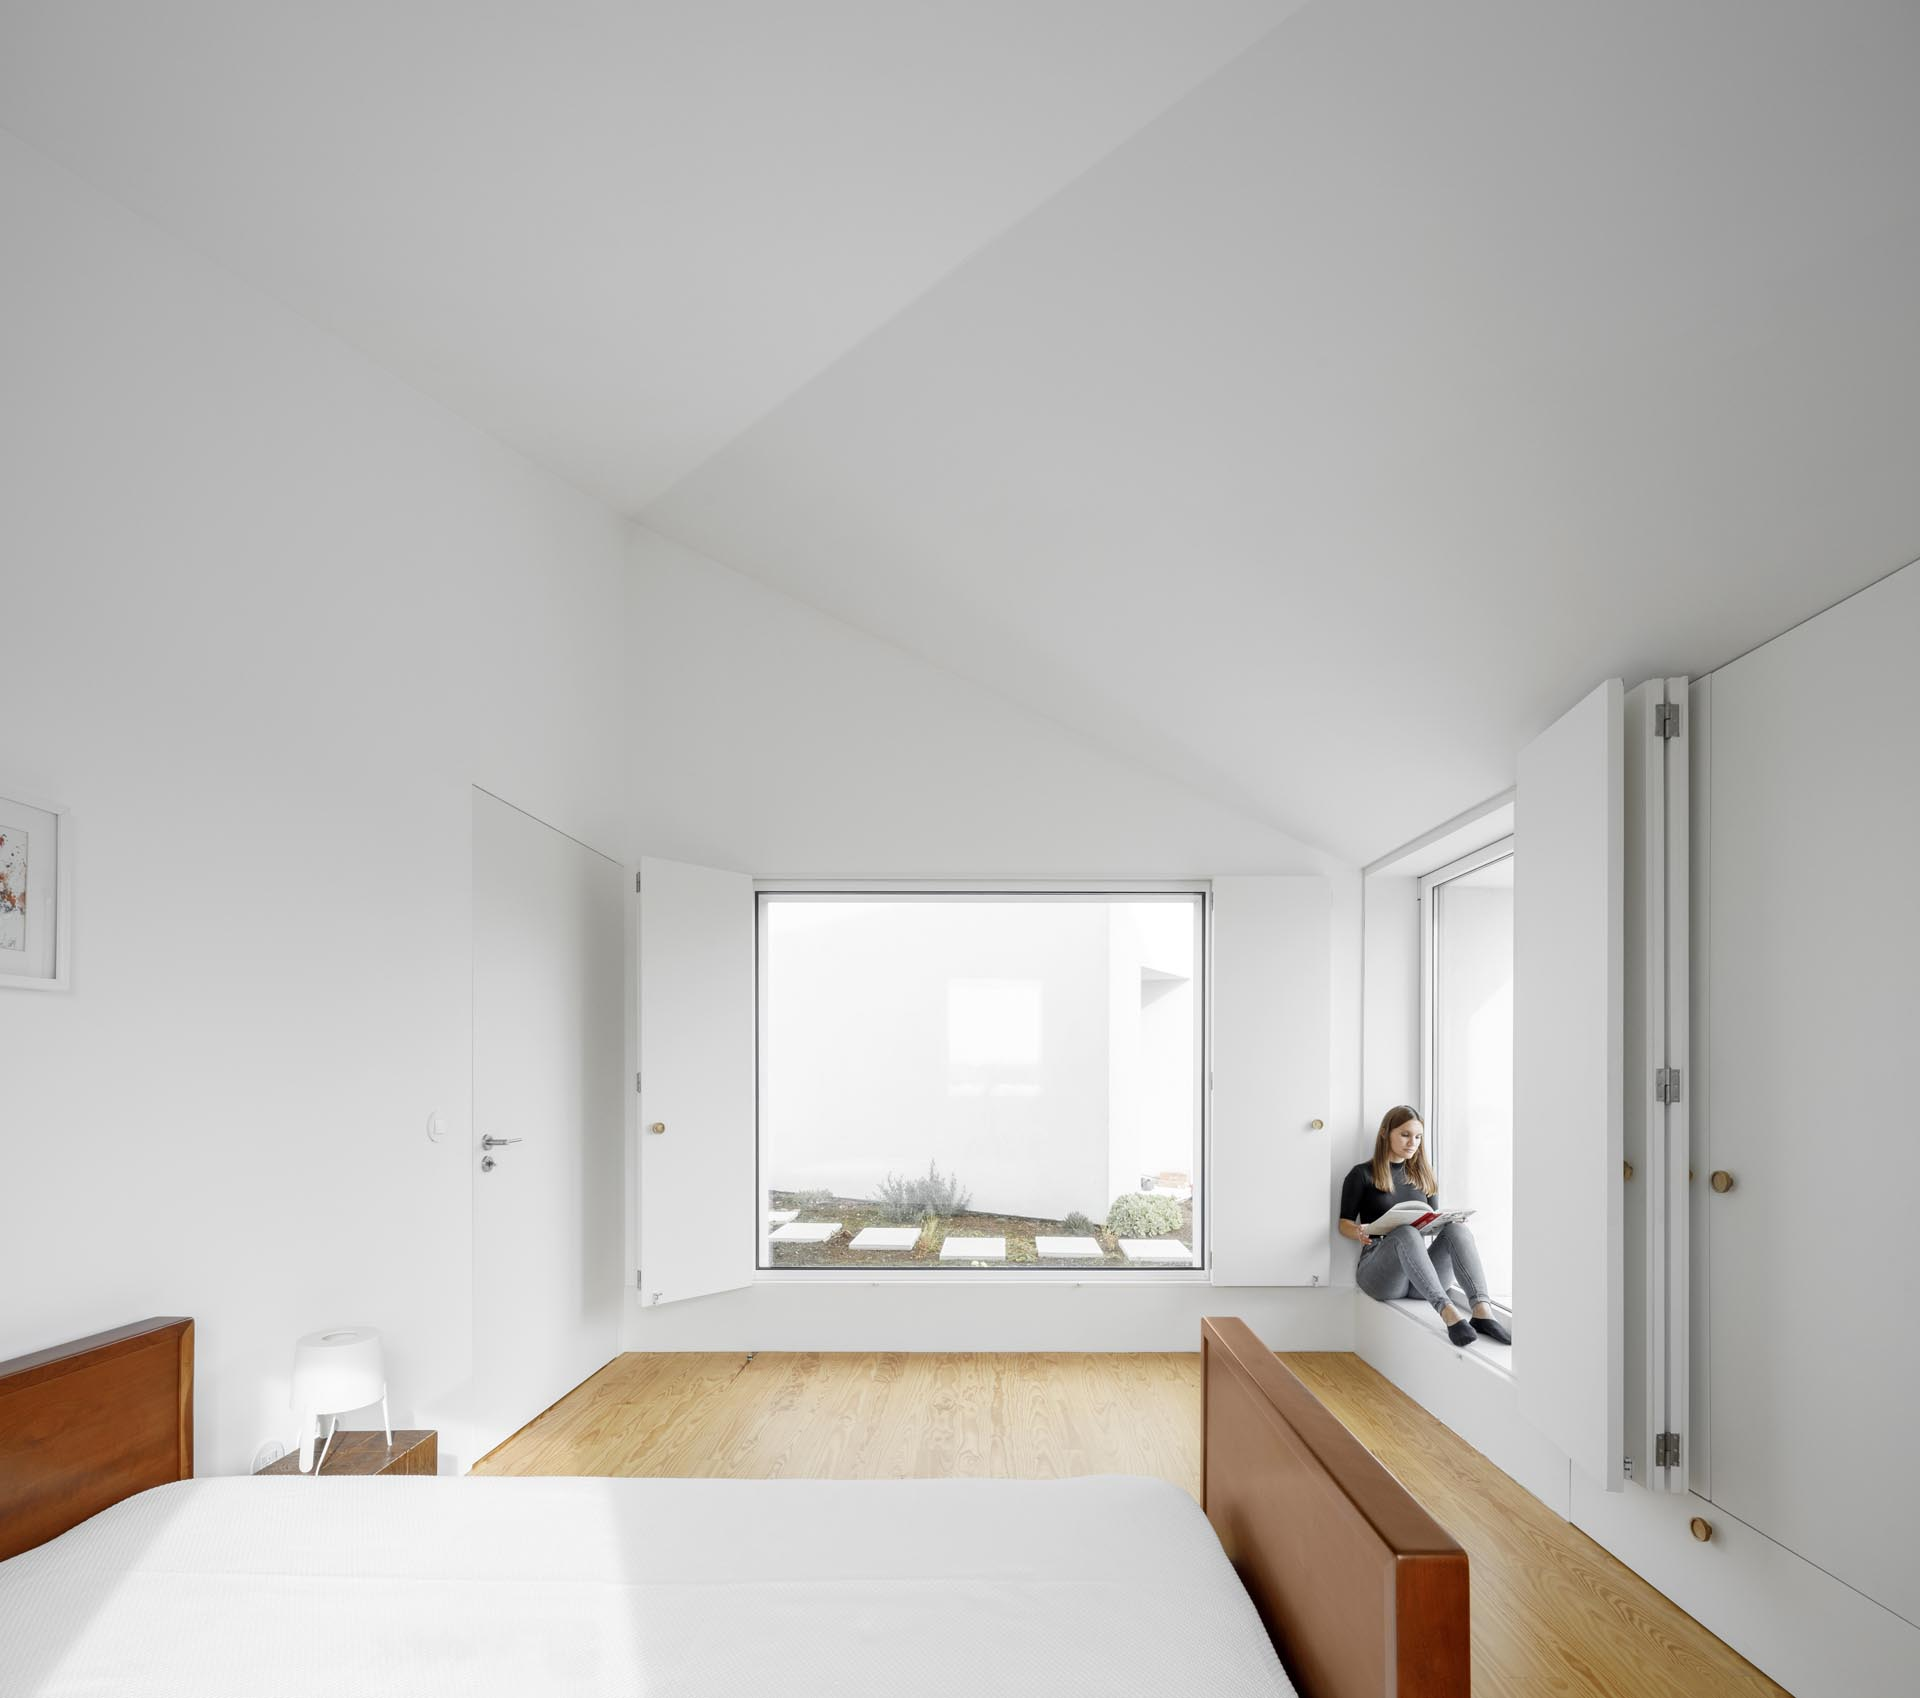 A modern bedroom with minimalist furnishings and folding window shutters.